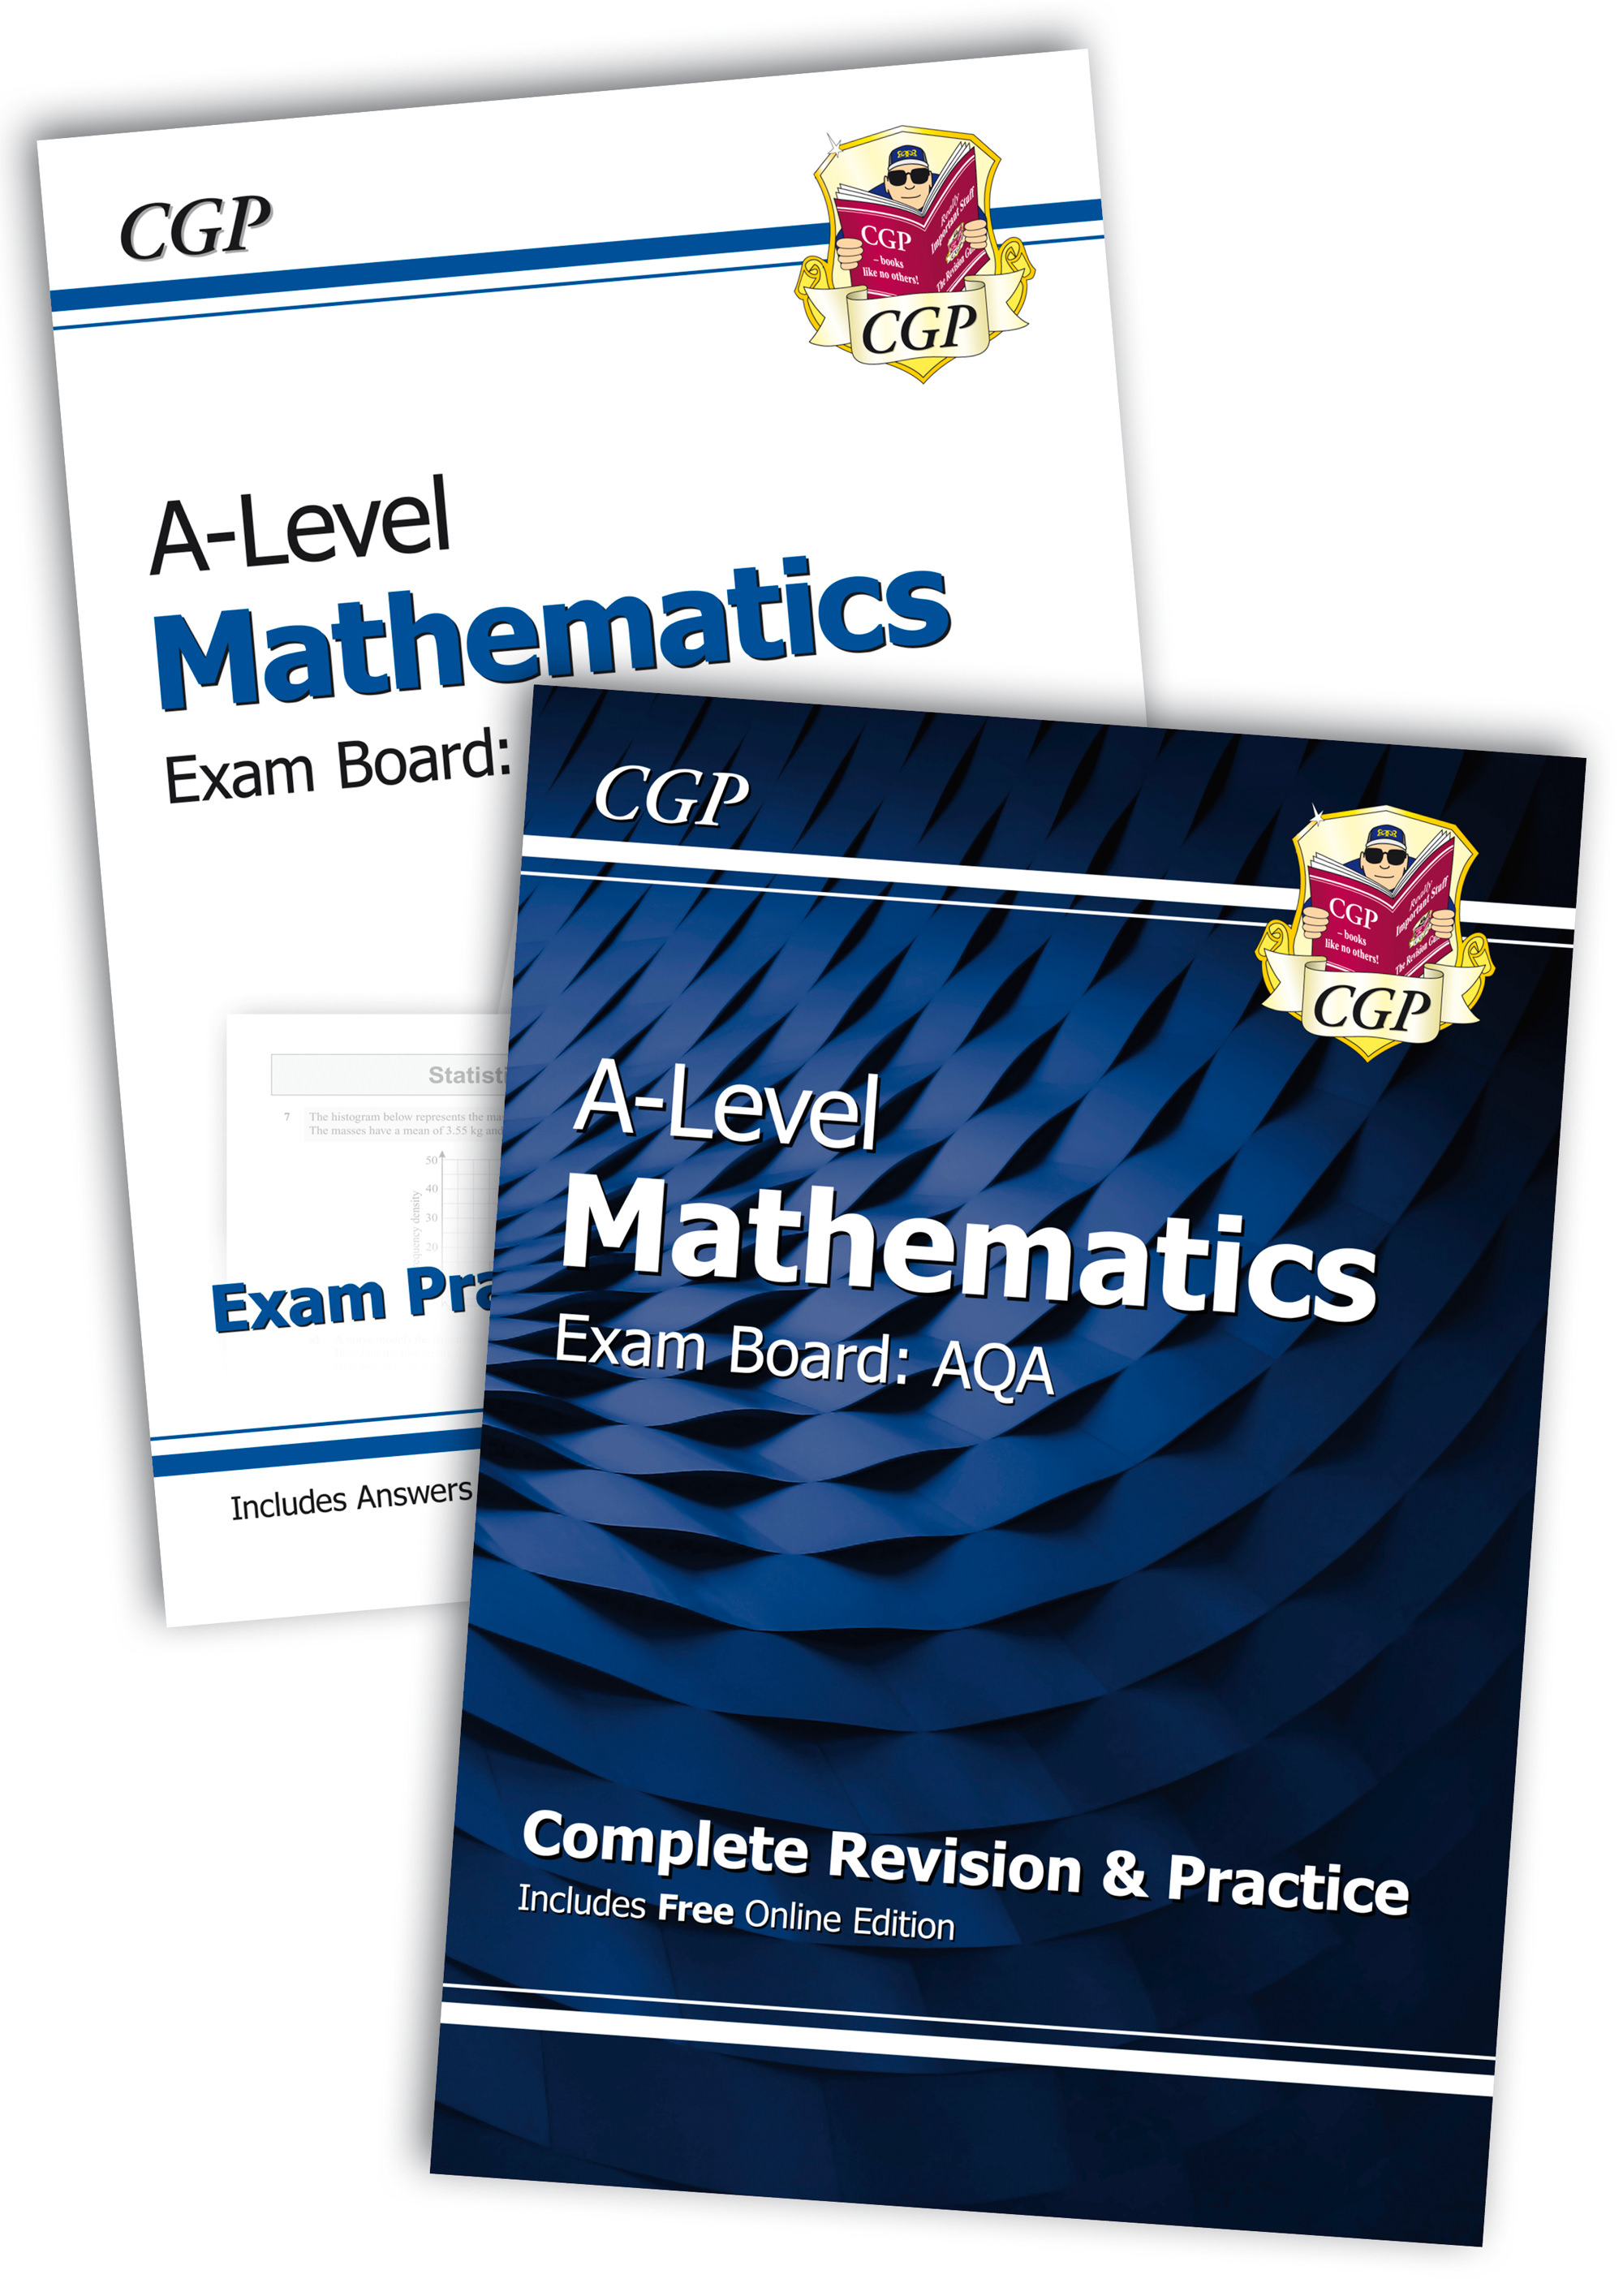 MAHB71 - Complete Revision and Exam Practice A-Level Maths Bundle: AQA Year 1 & 2